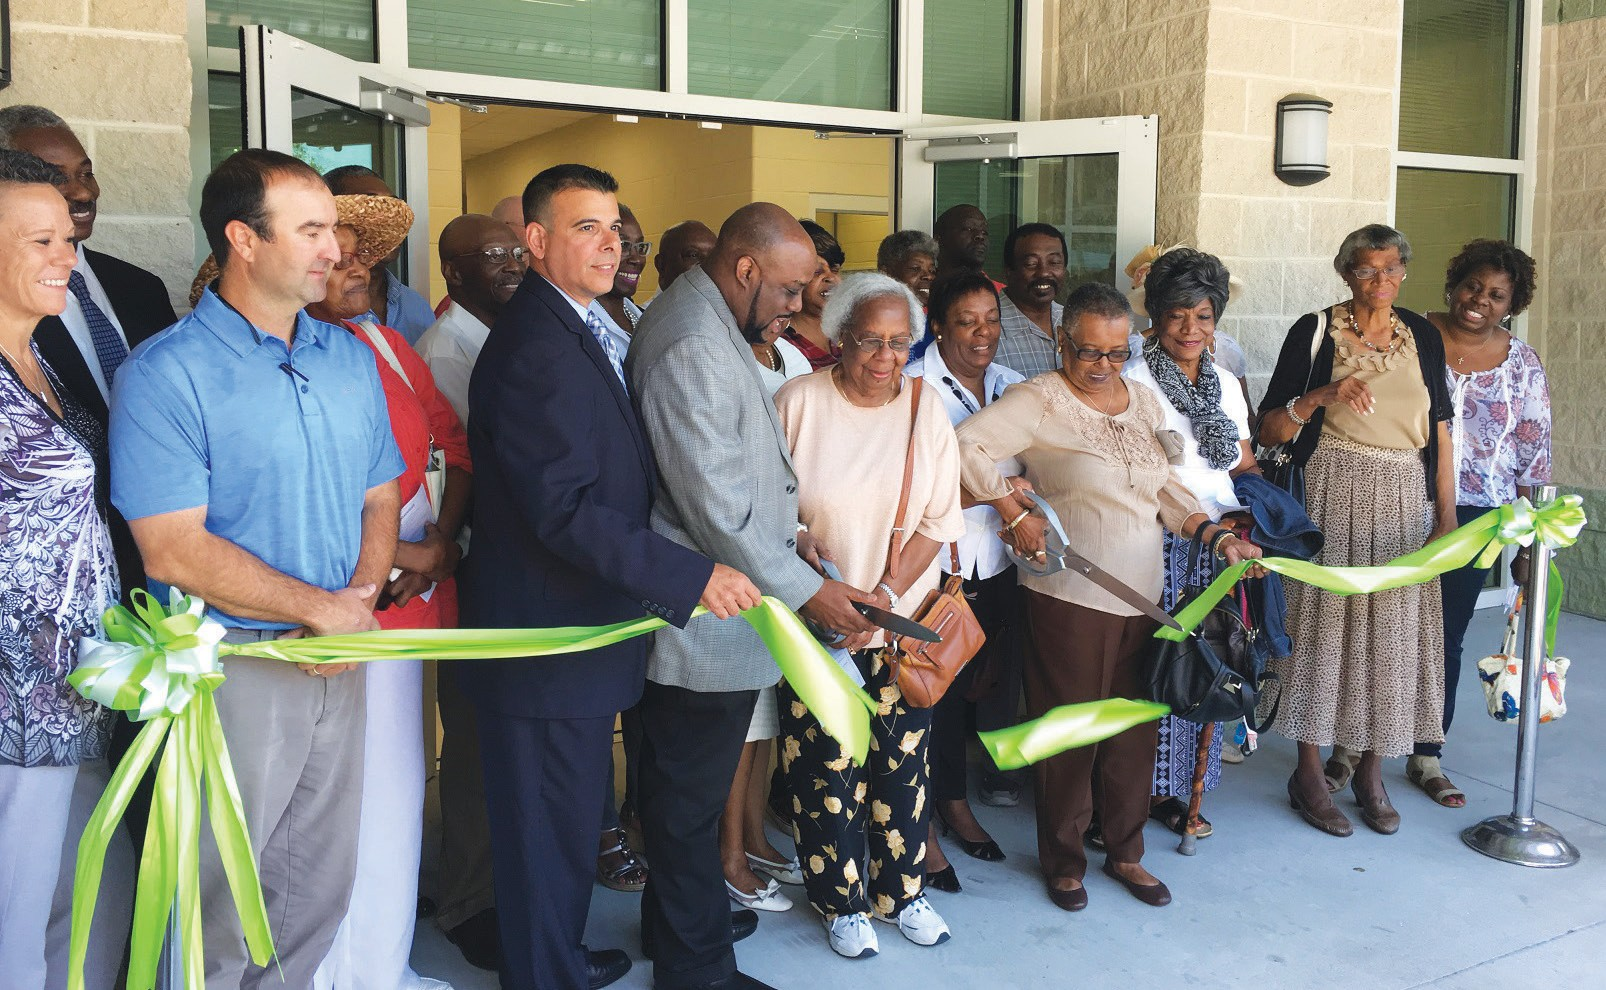 Alderman Van Johnson, CM Hernandez and community members cut ribbon on the renovated Tompkins Regional Center